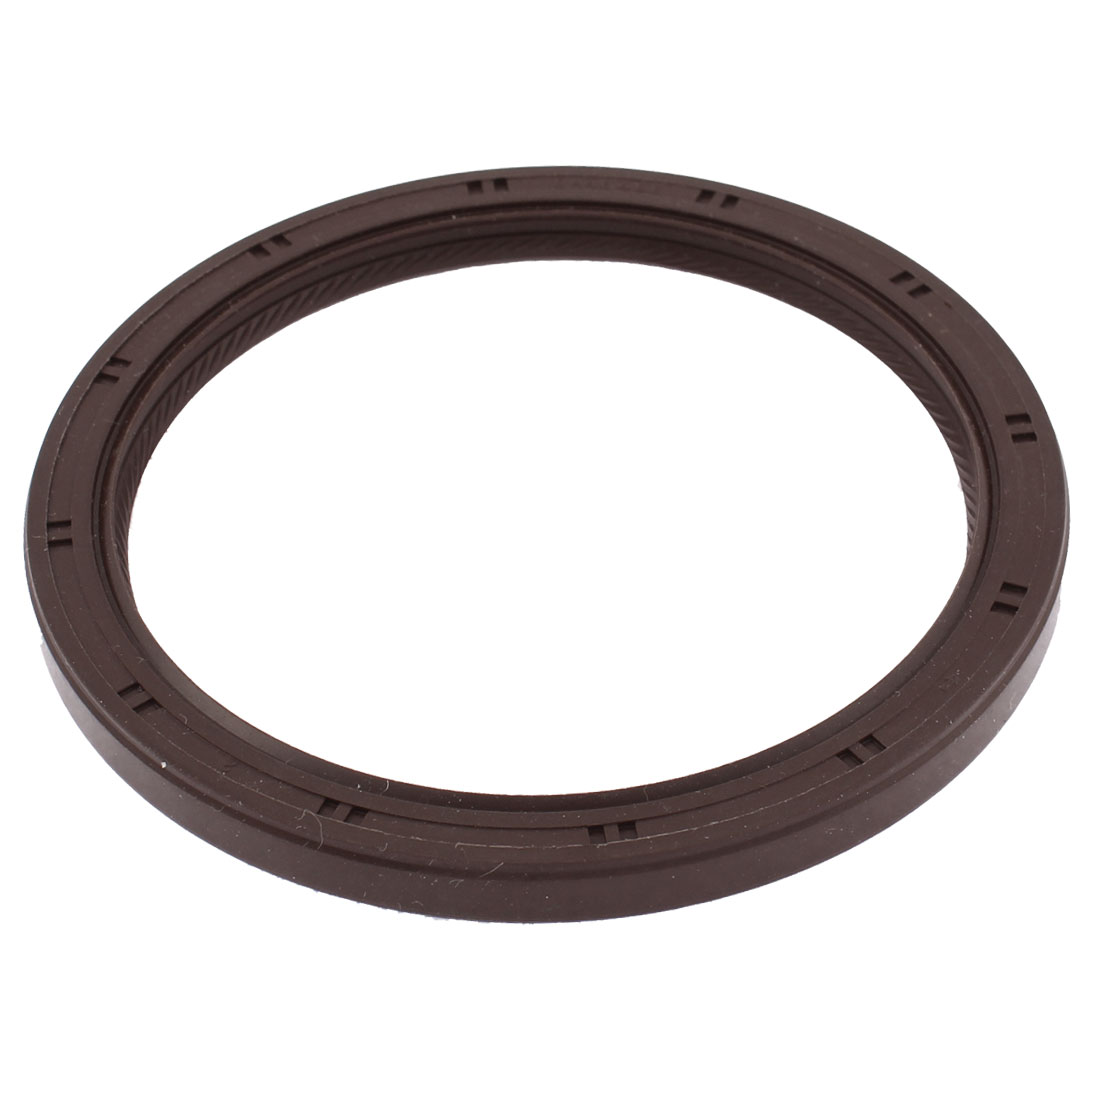 Engine Crankshaft Double Lipped Ring Oil Seal Gasket 84mm x 103mm x 8mm